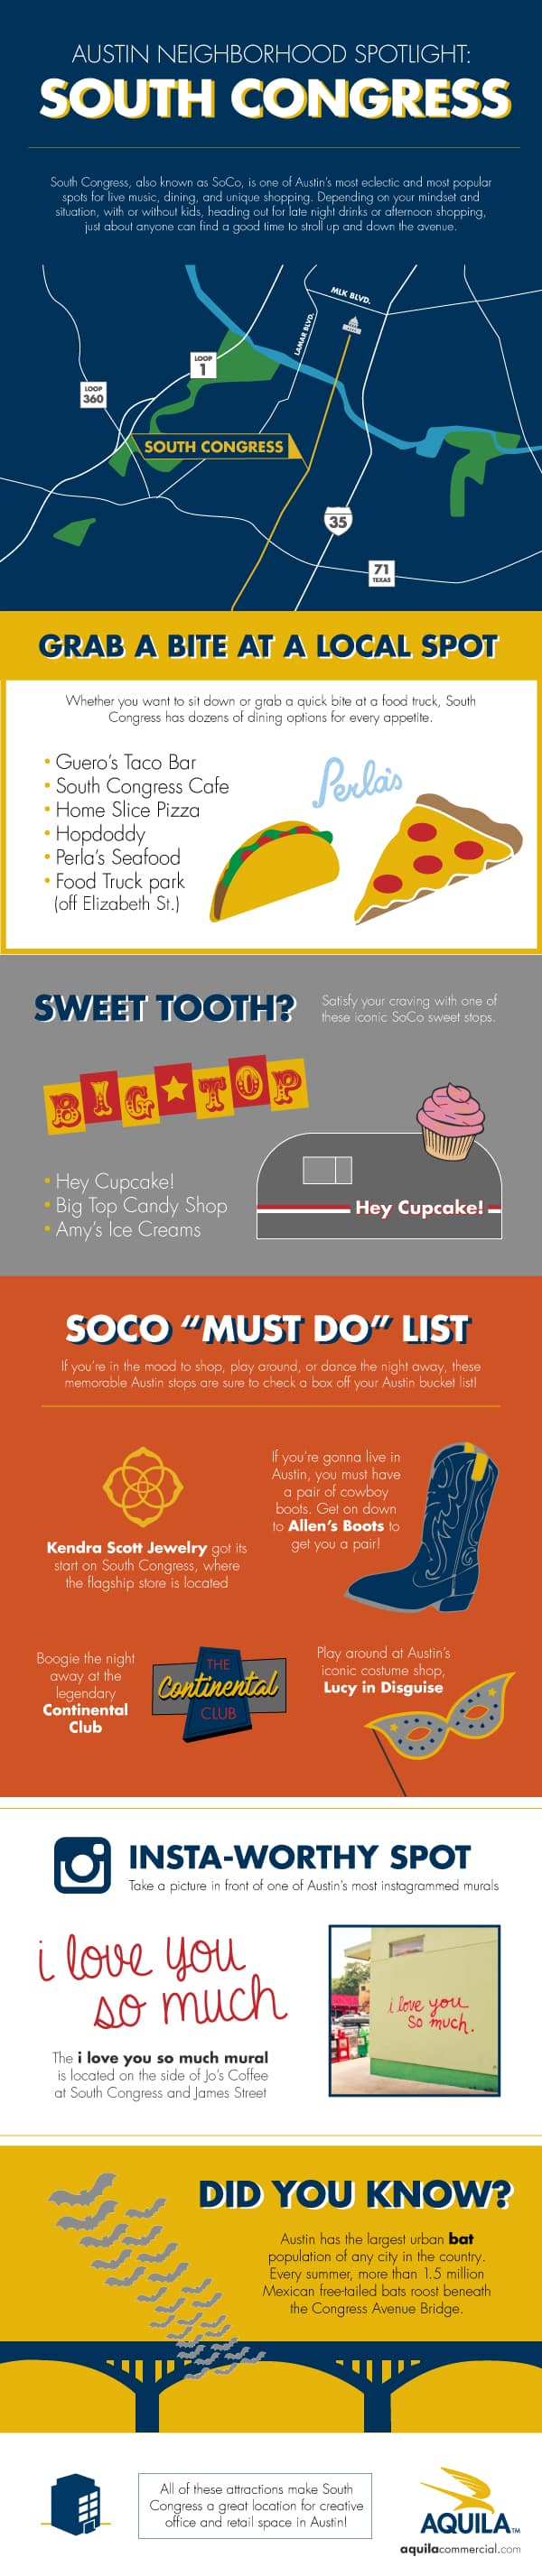 Best of South Congress in Austin, Texas | Infographic: Best Restaurants, Best Bars, What to Do